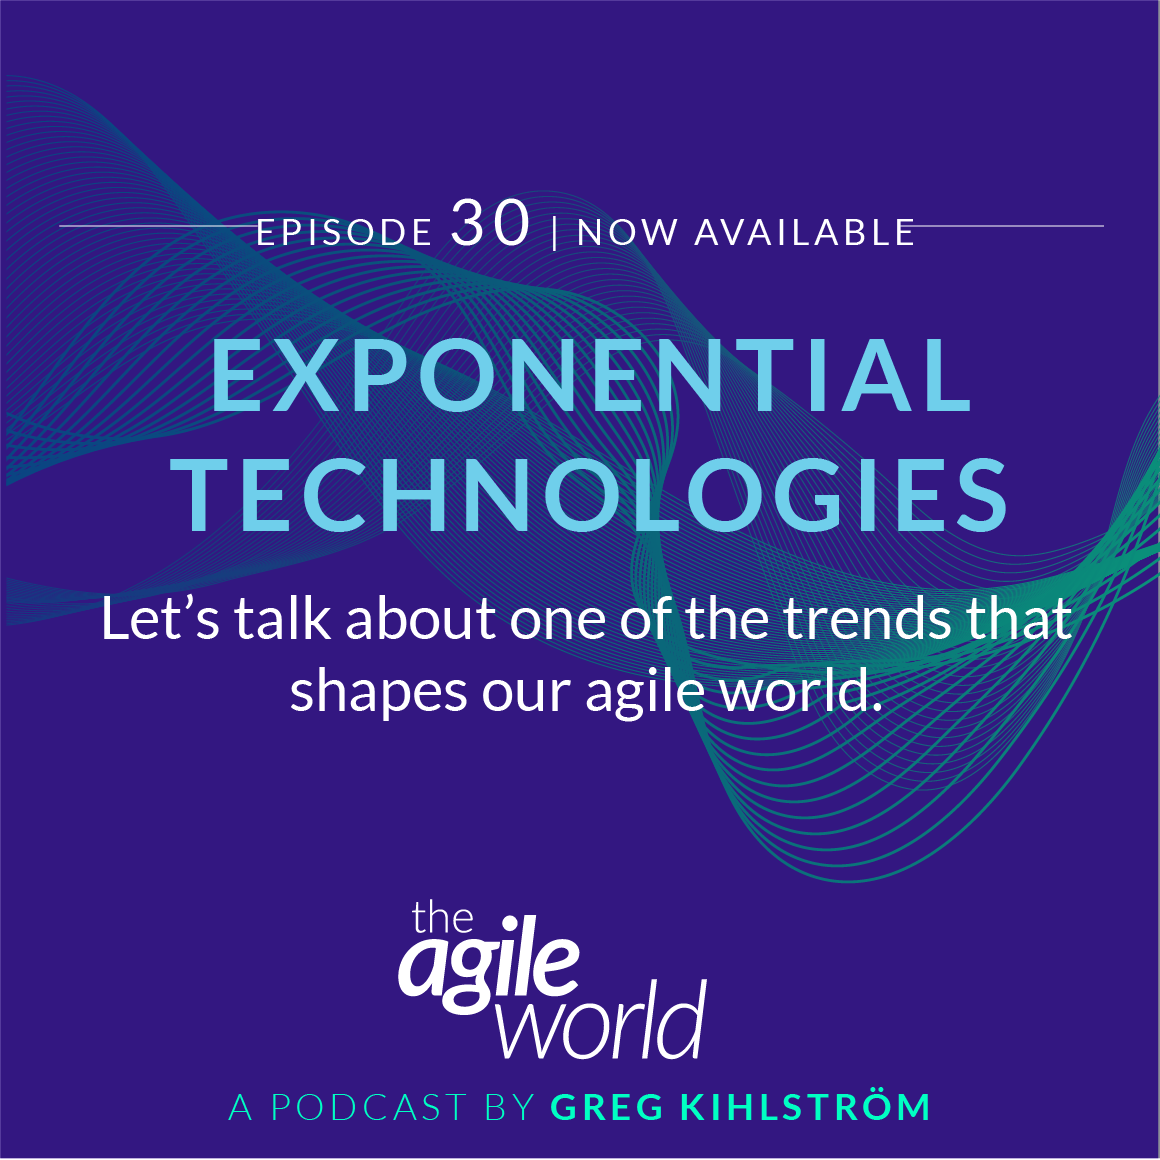 TheAgileWorld-Episode-30.png